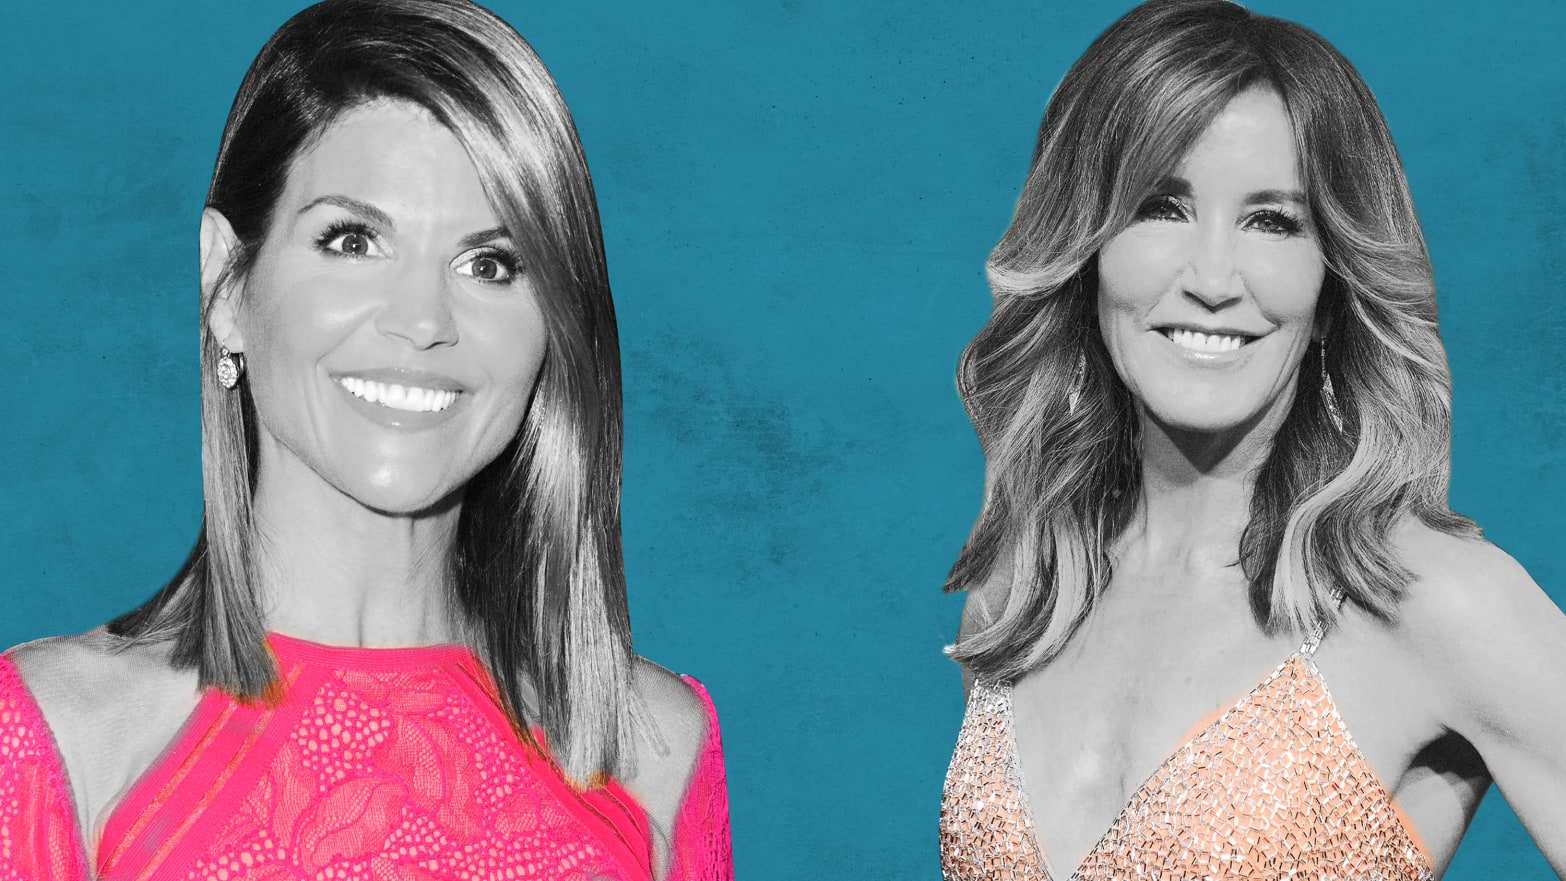 Movie Stars Have Their Uses Medical >> Fbi Felicity Huffman Lori Loughlin Among Stars Who Paid Bribes To